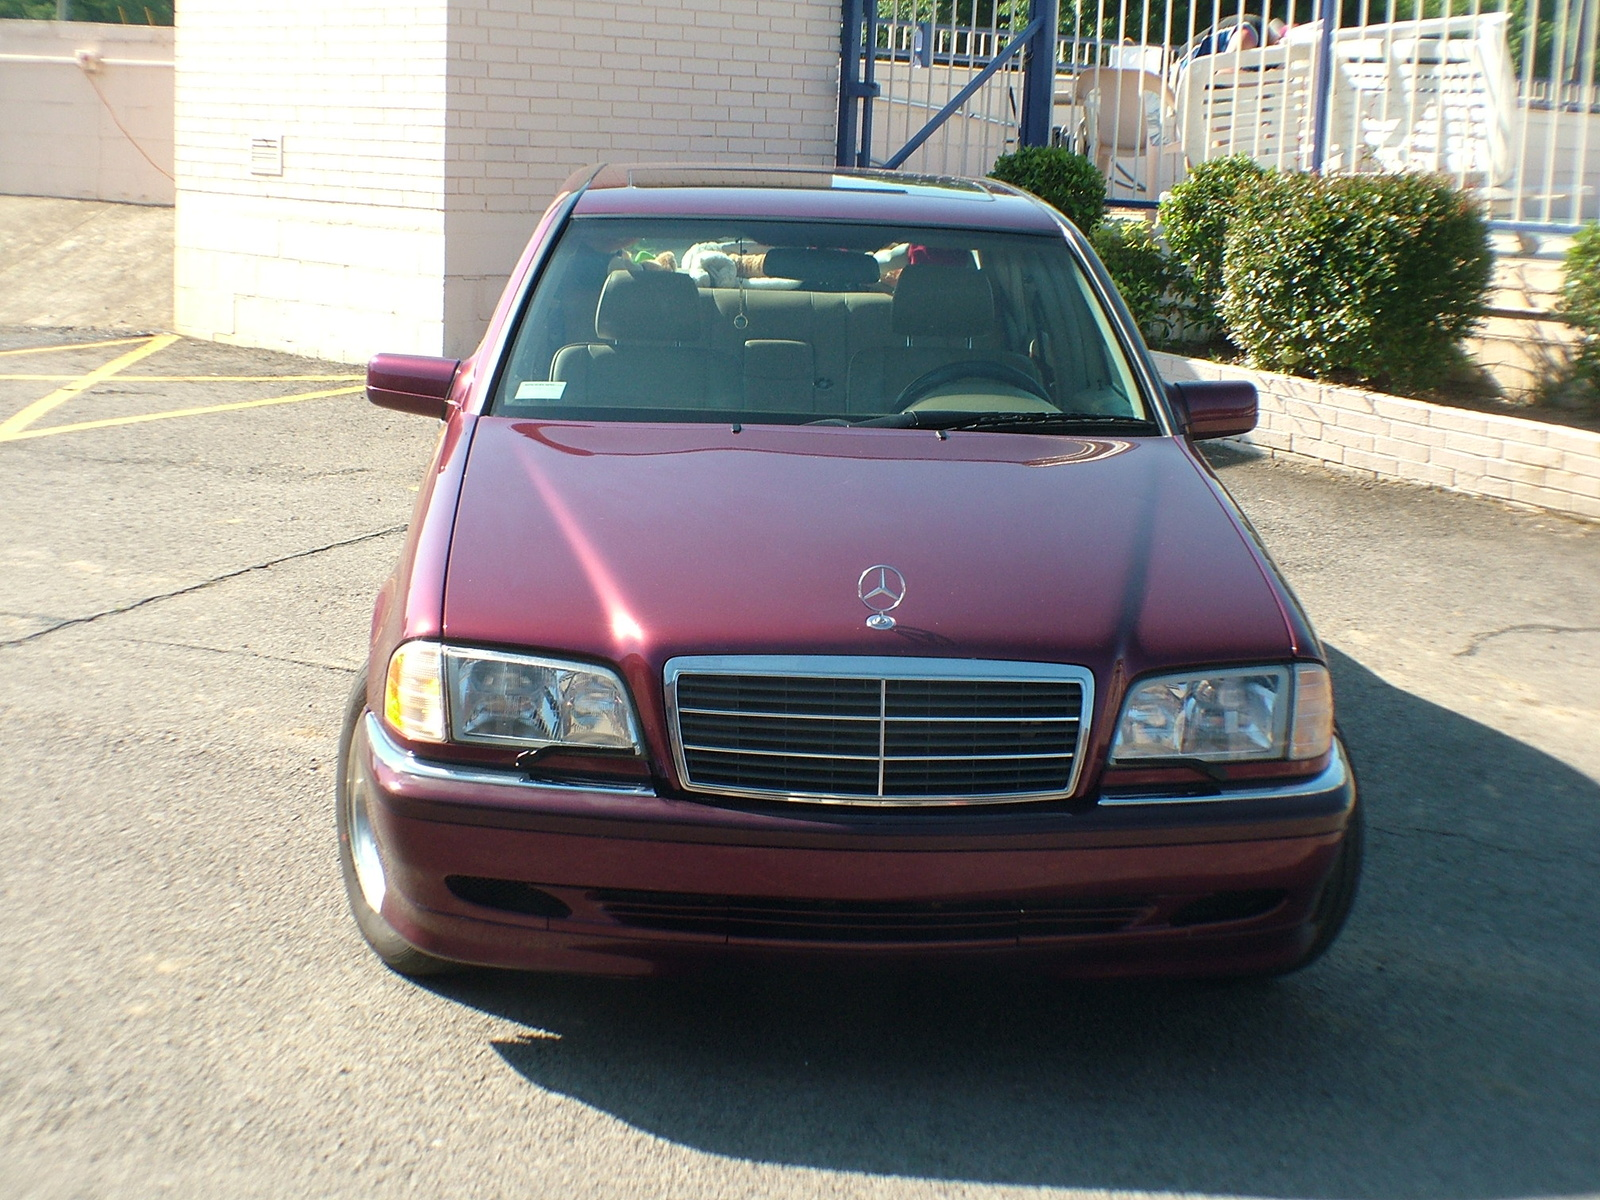 1998 Mercedes-Benz C-Class 4 Dr C230 Sedan, Picture of 1998 Mercedes-Benz C230 4 Dr C230 Sedan, exterior